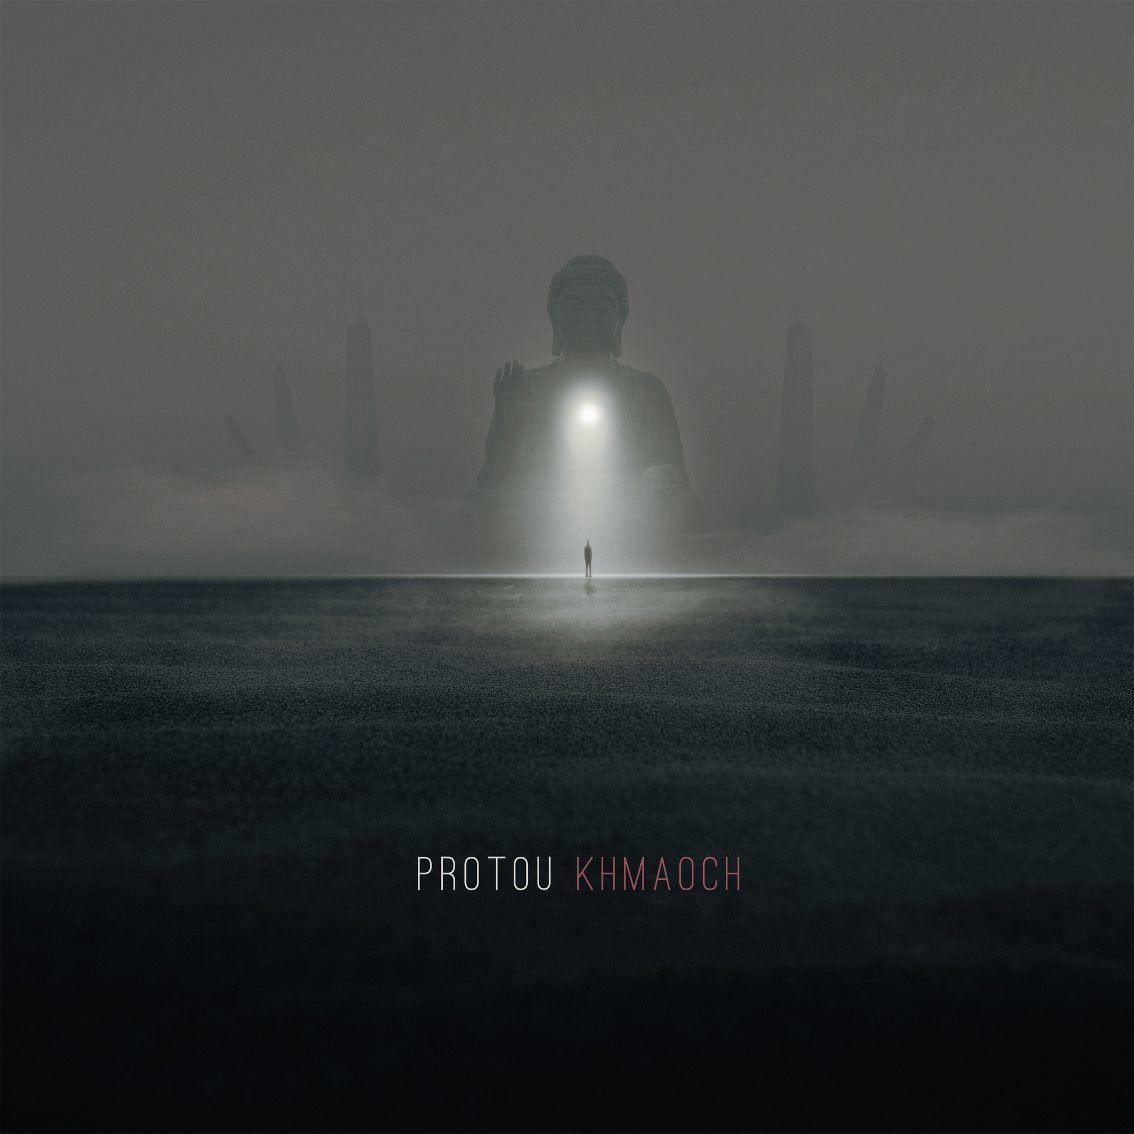 ProtoU returns with 2nd album on Cryo Chamber: 'Khmaoch' - out now